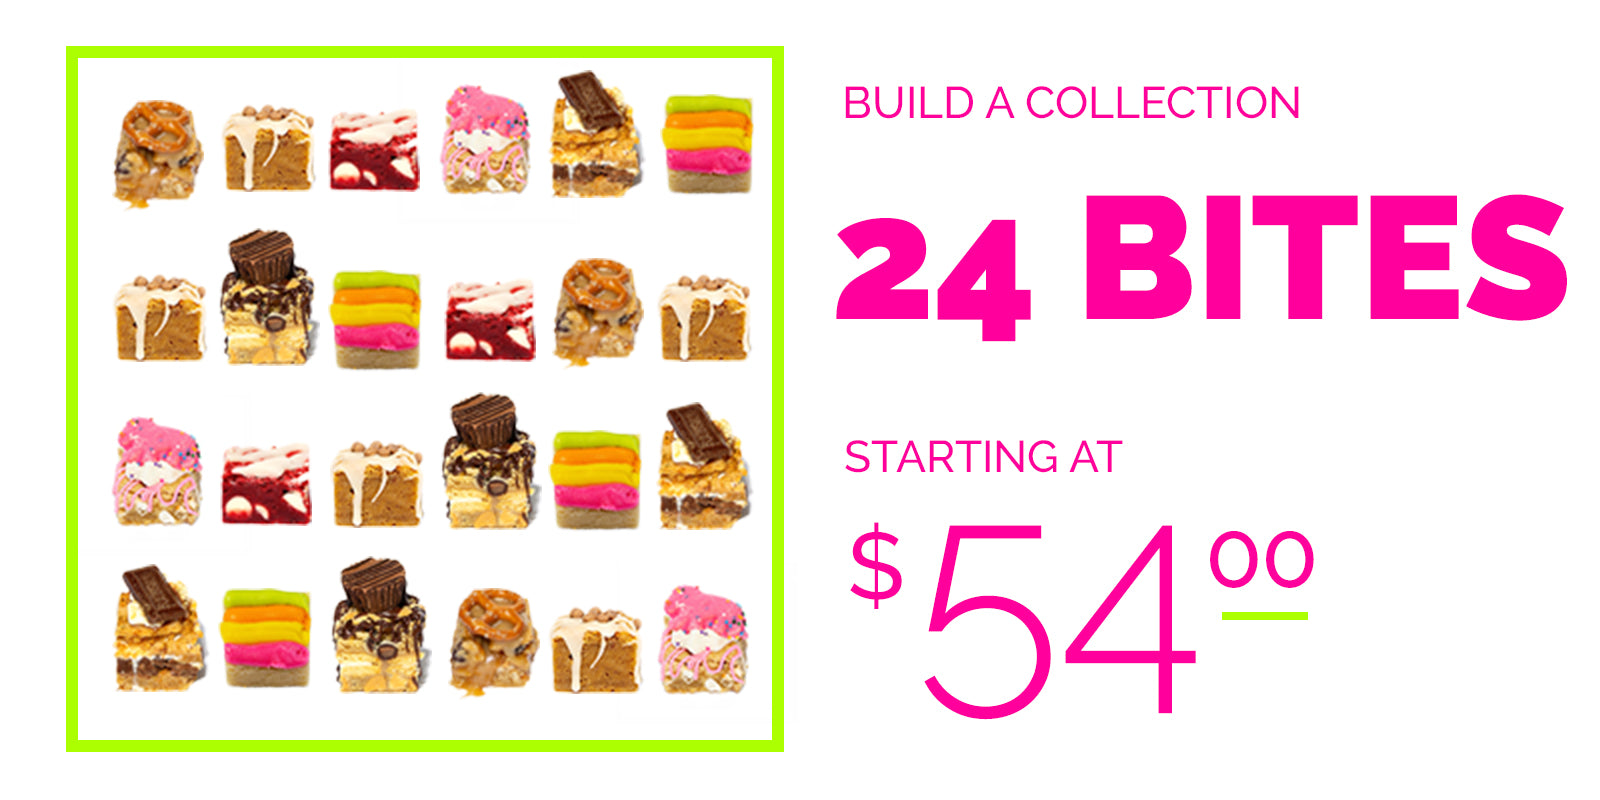 build a collection 24 bites starting at $54